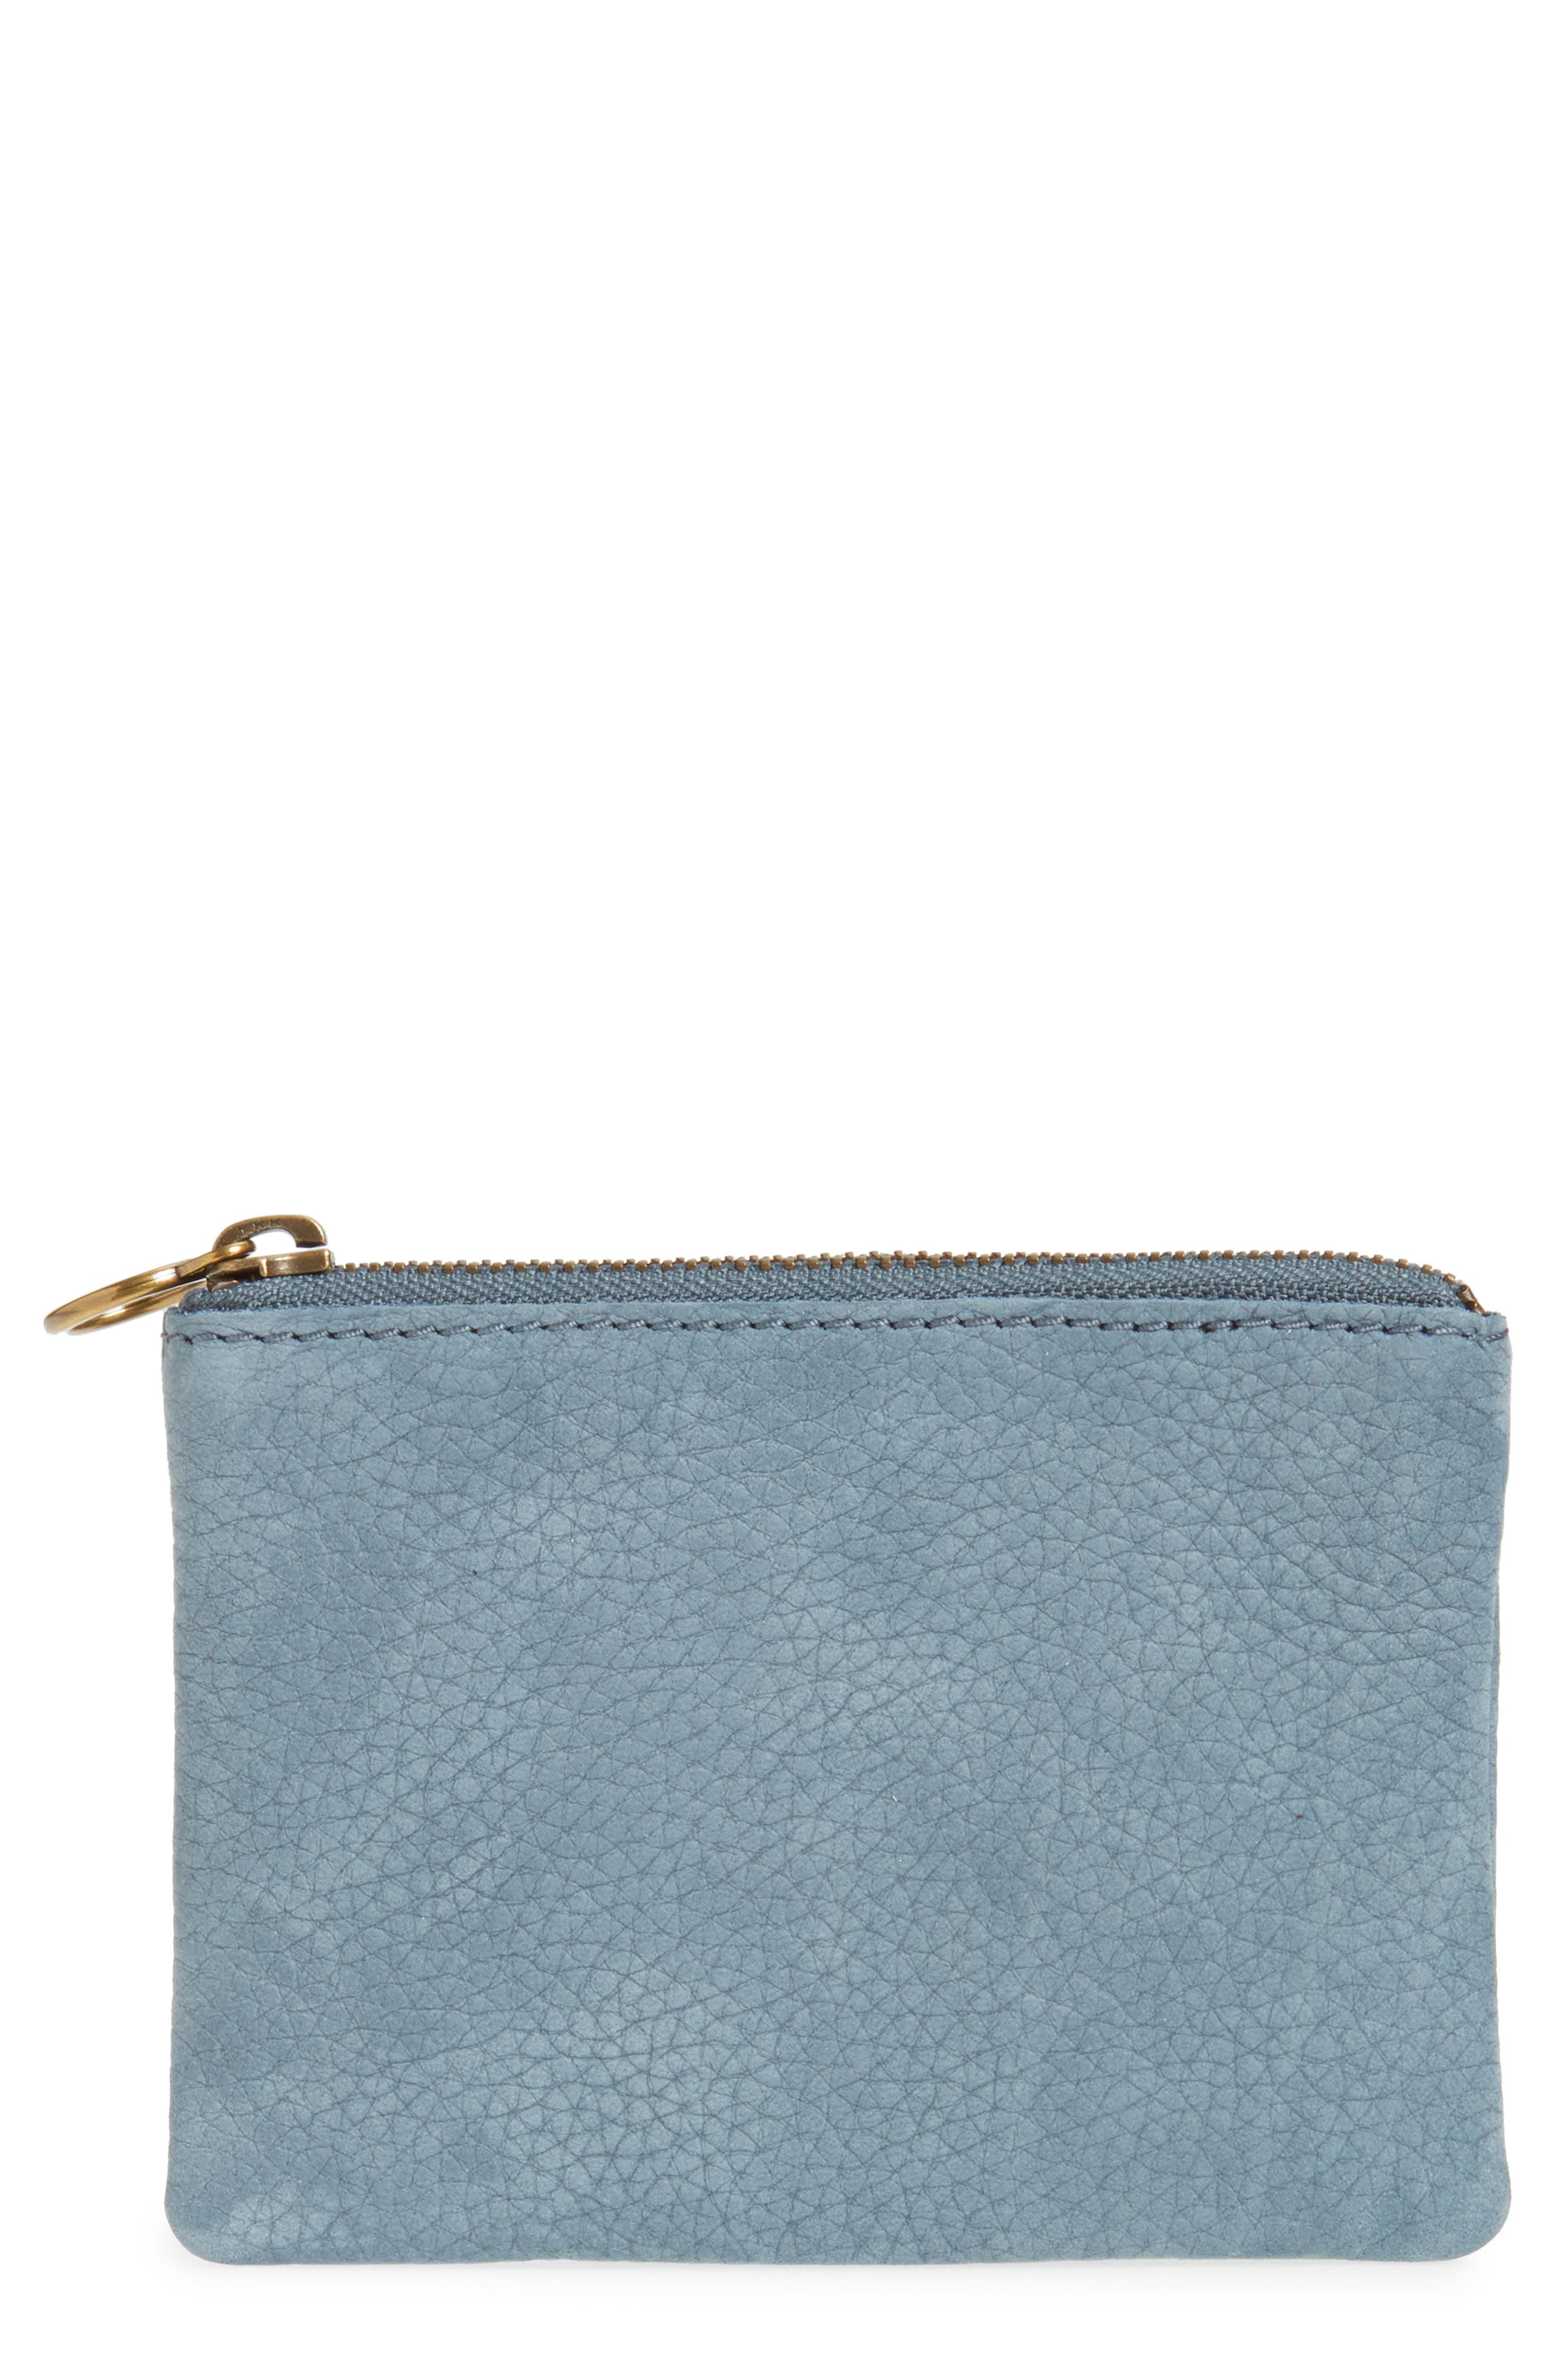 Madewell Nubuck Leather Pouch Wallet